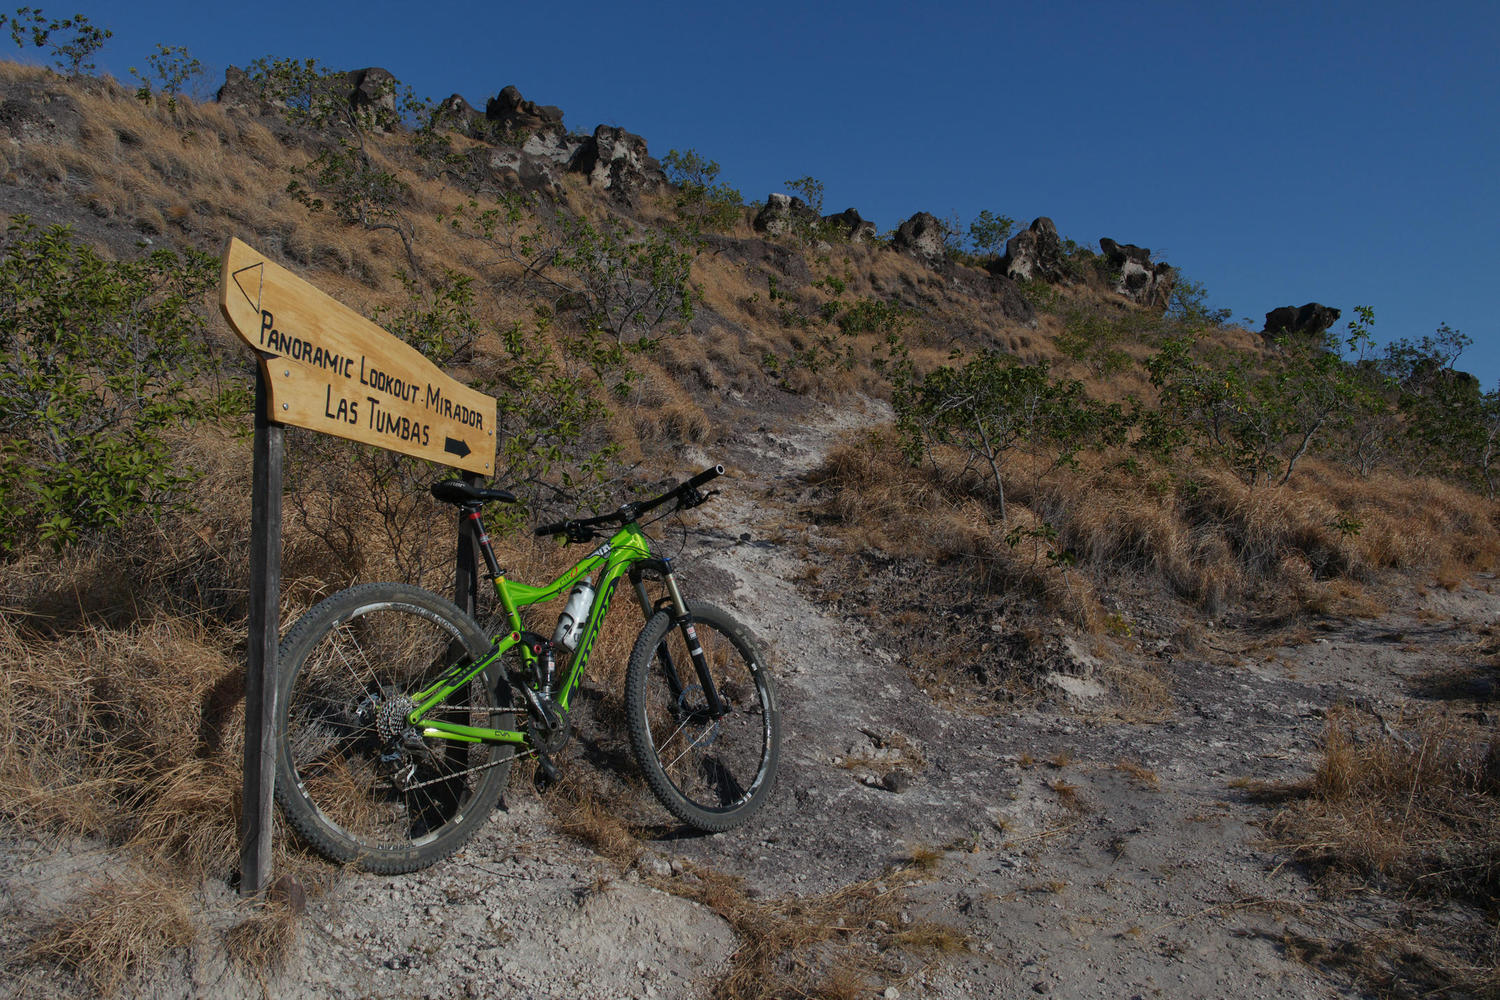 Mountain bike sign on the bike trail in Rio Perdido, Rincon de la Vieja